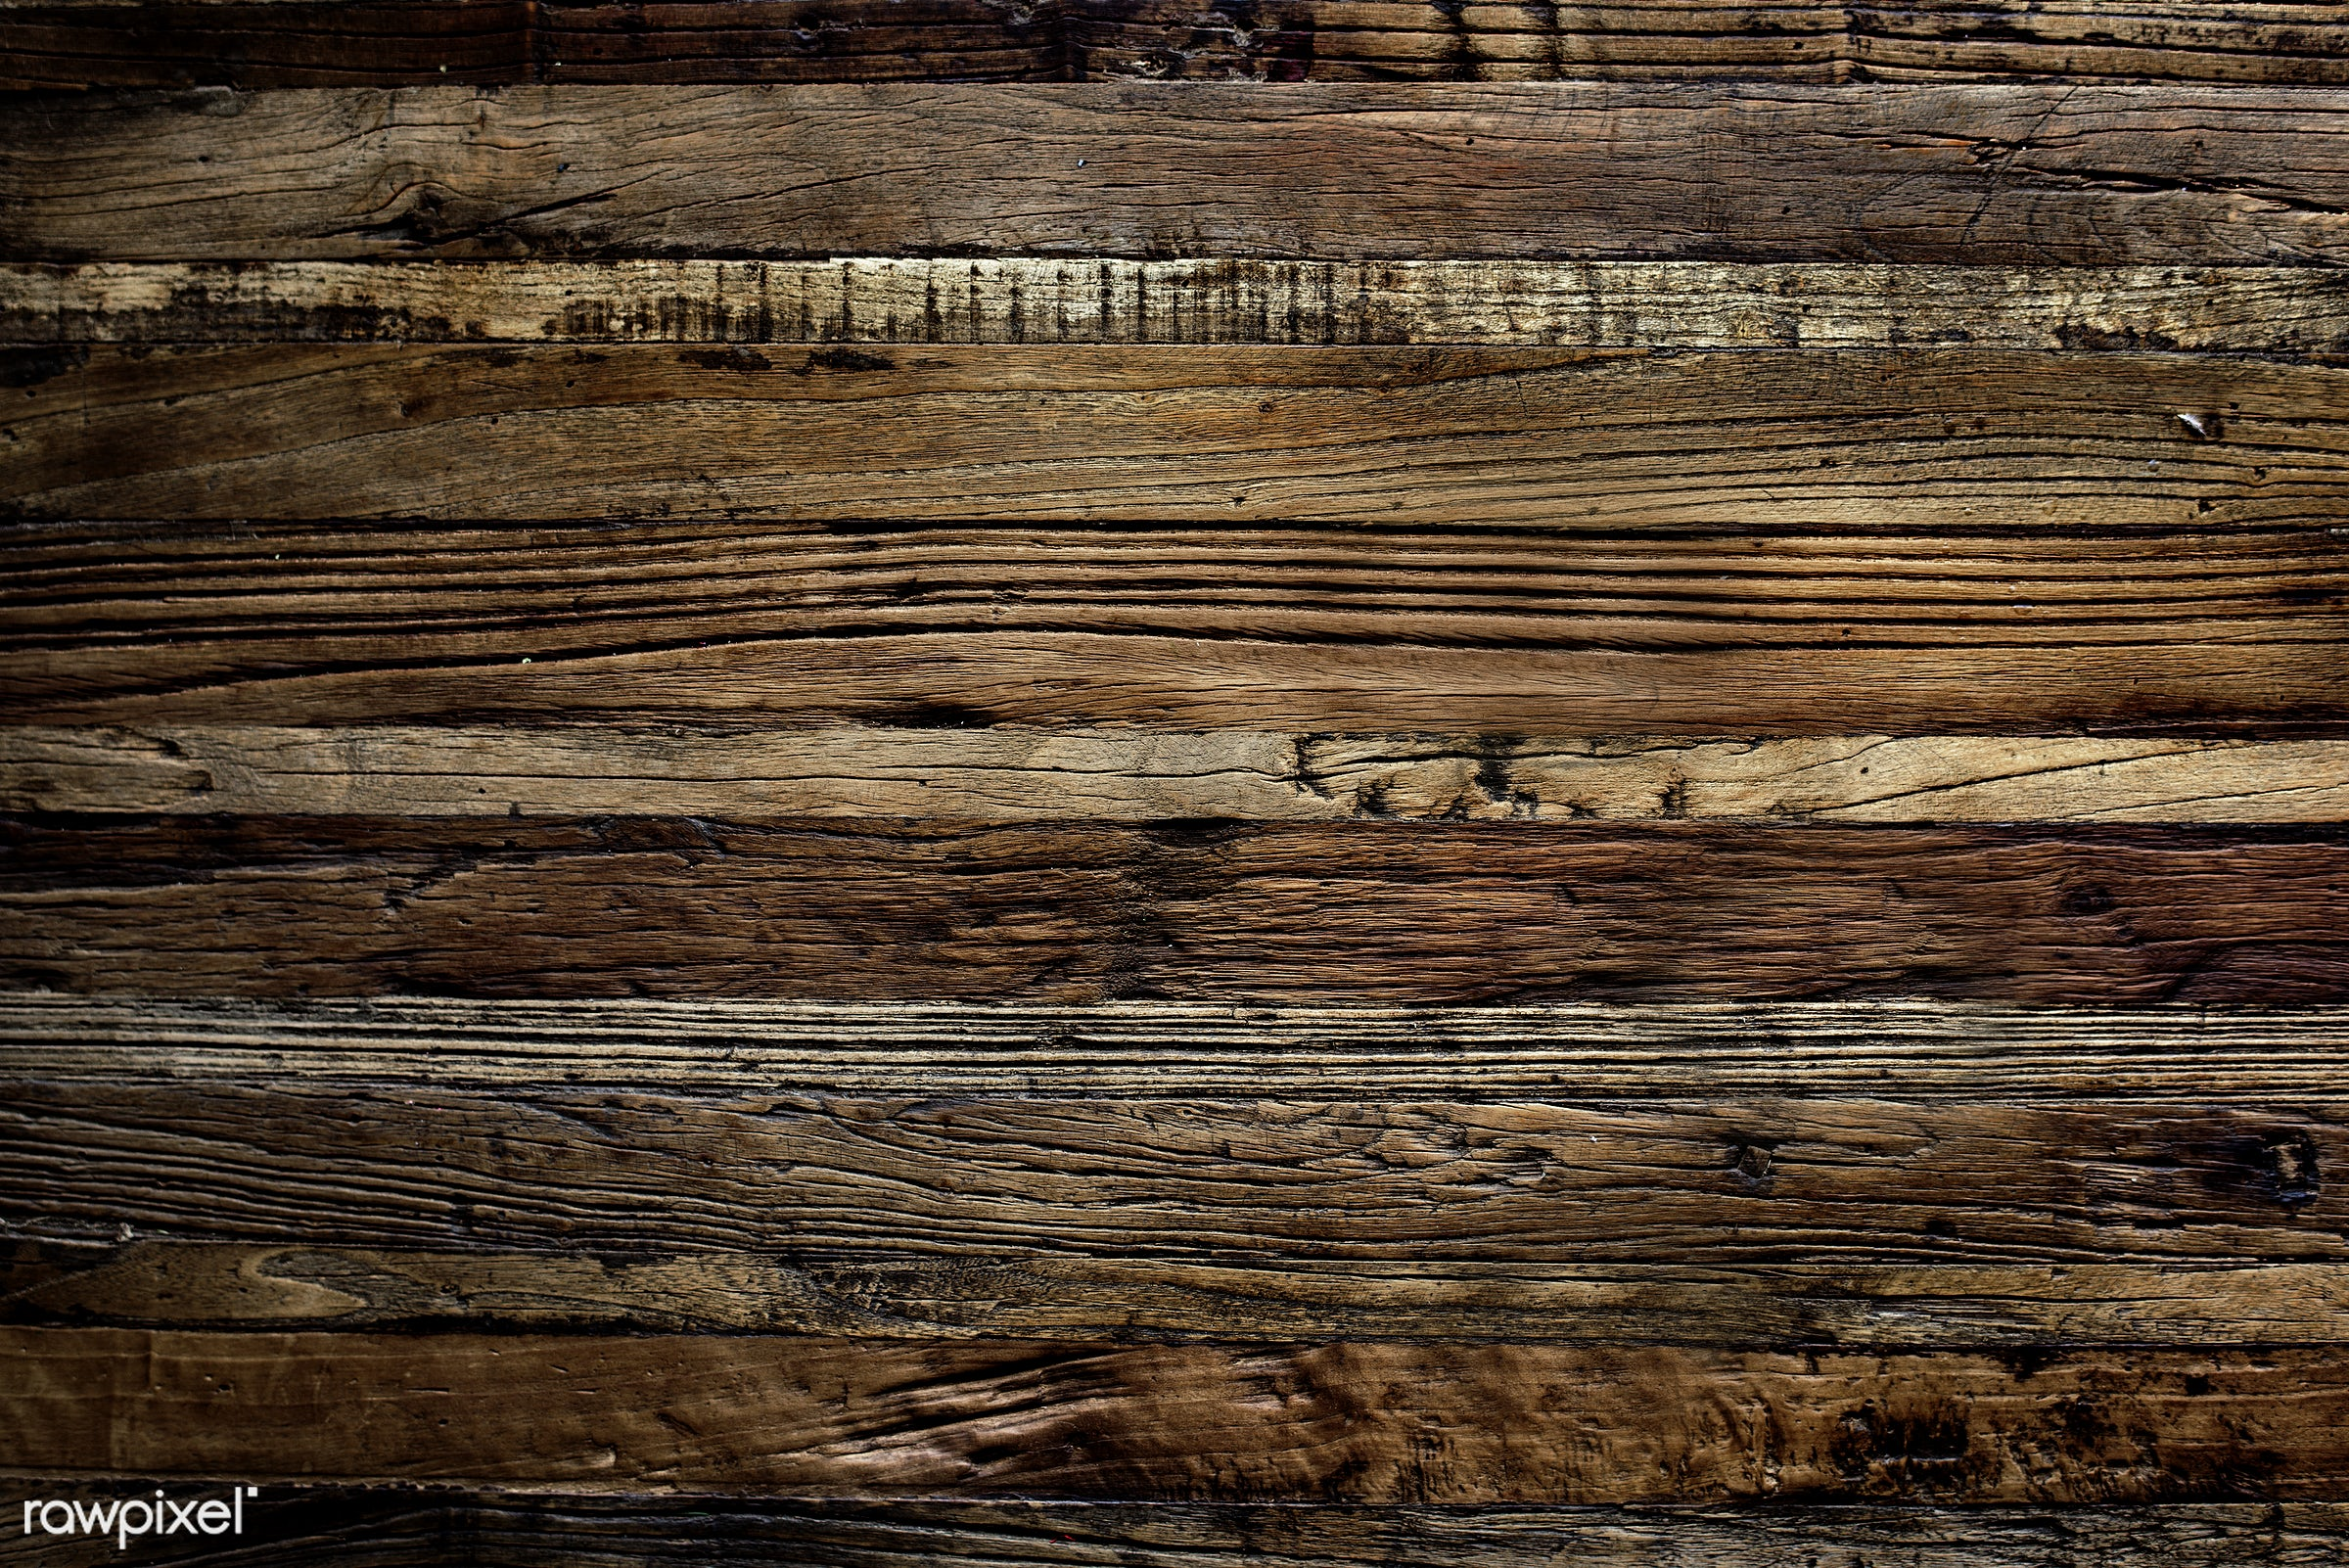 nobody, detail, copy space, surface, decorative, wood, plank, retro, show, space, decor, grunge, nature, attractive, bark,...